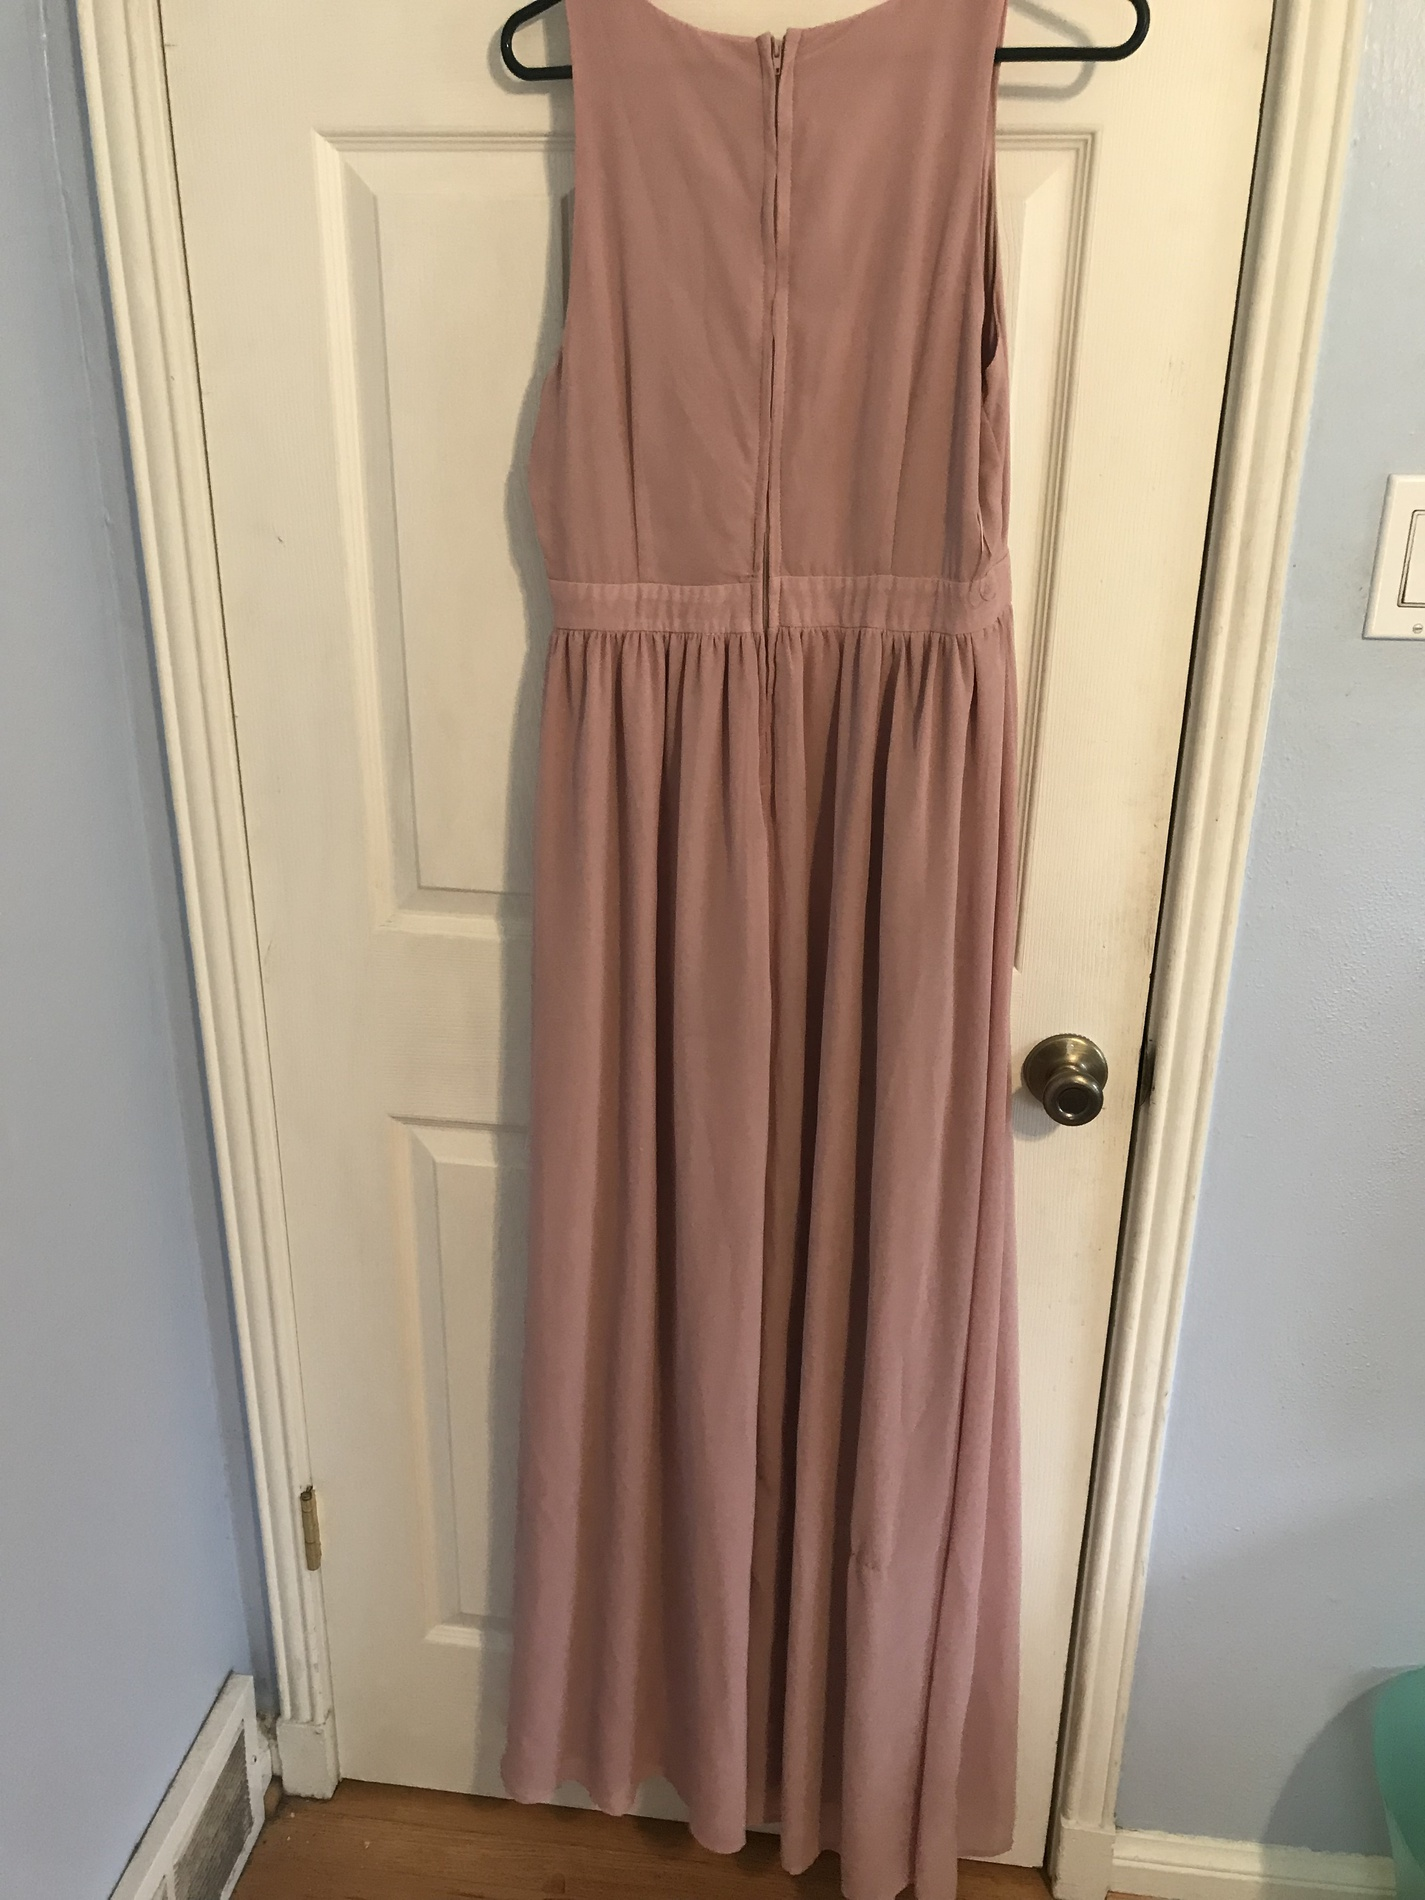 Windsor Pink Size 14 Homecoming Straight Dress on Queenly